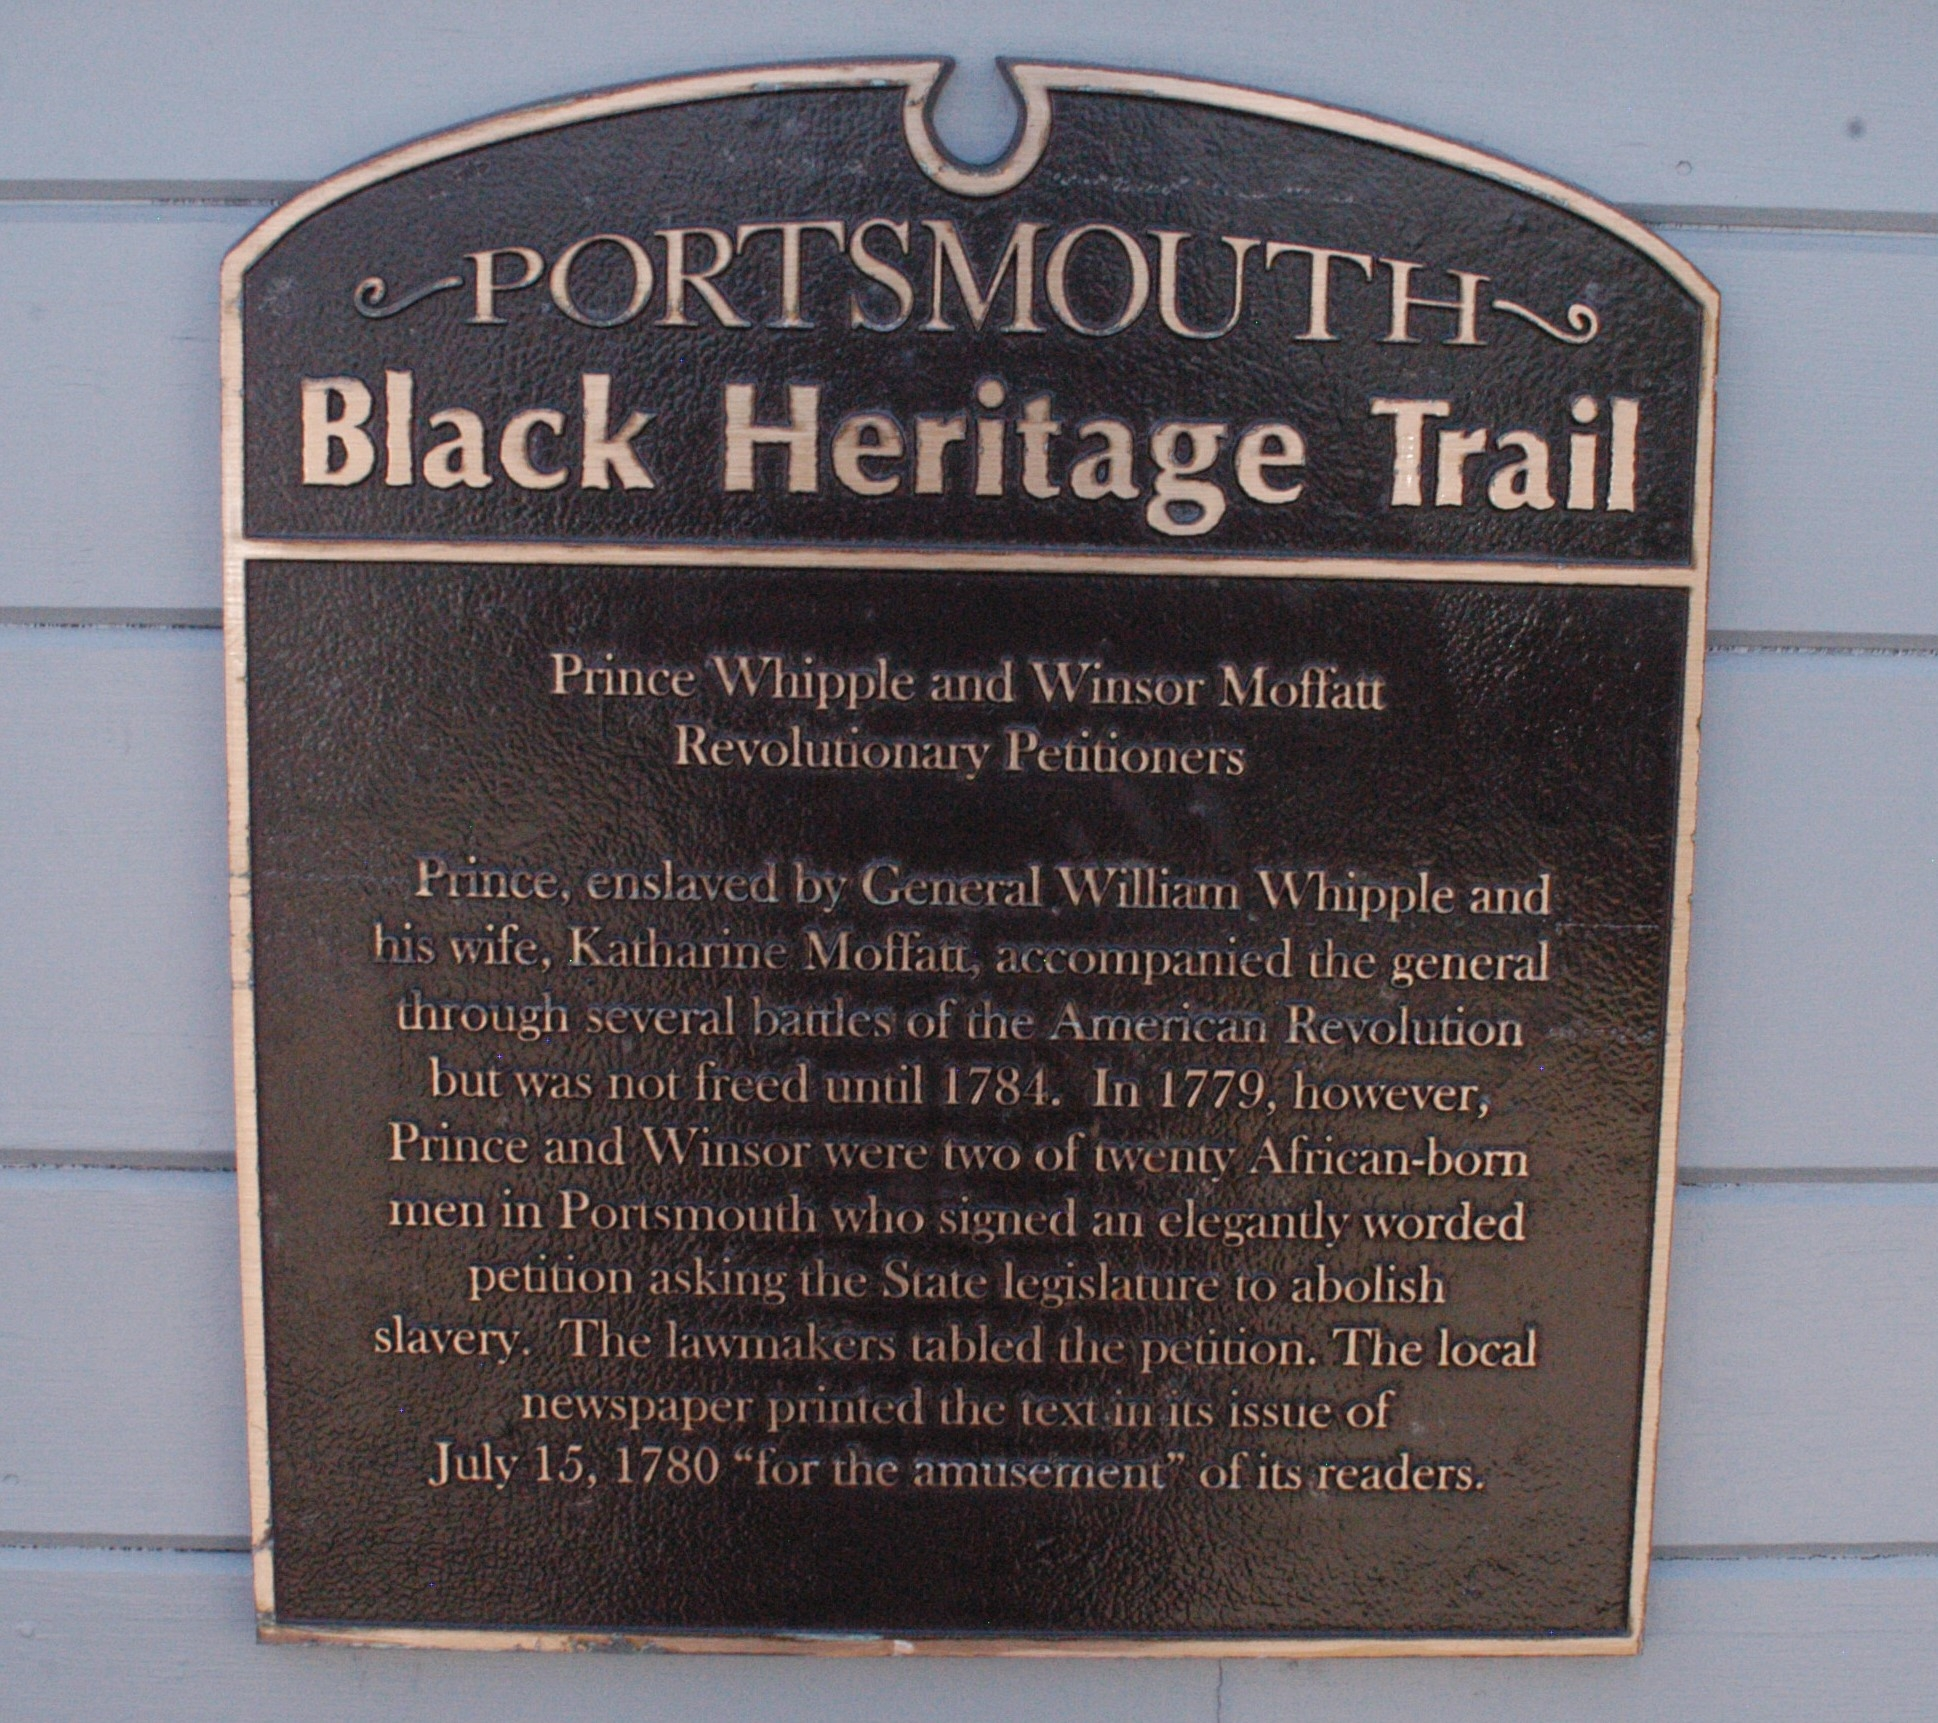 Portsmouth NH Black Heritage Trail Prince Whipple and Winsor Maffatt Revolutionary Petitioners Marker